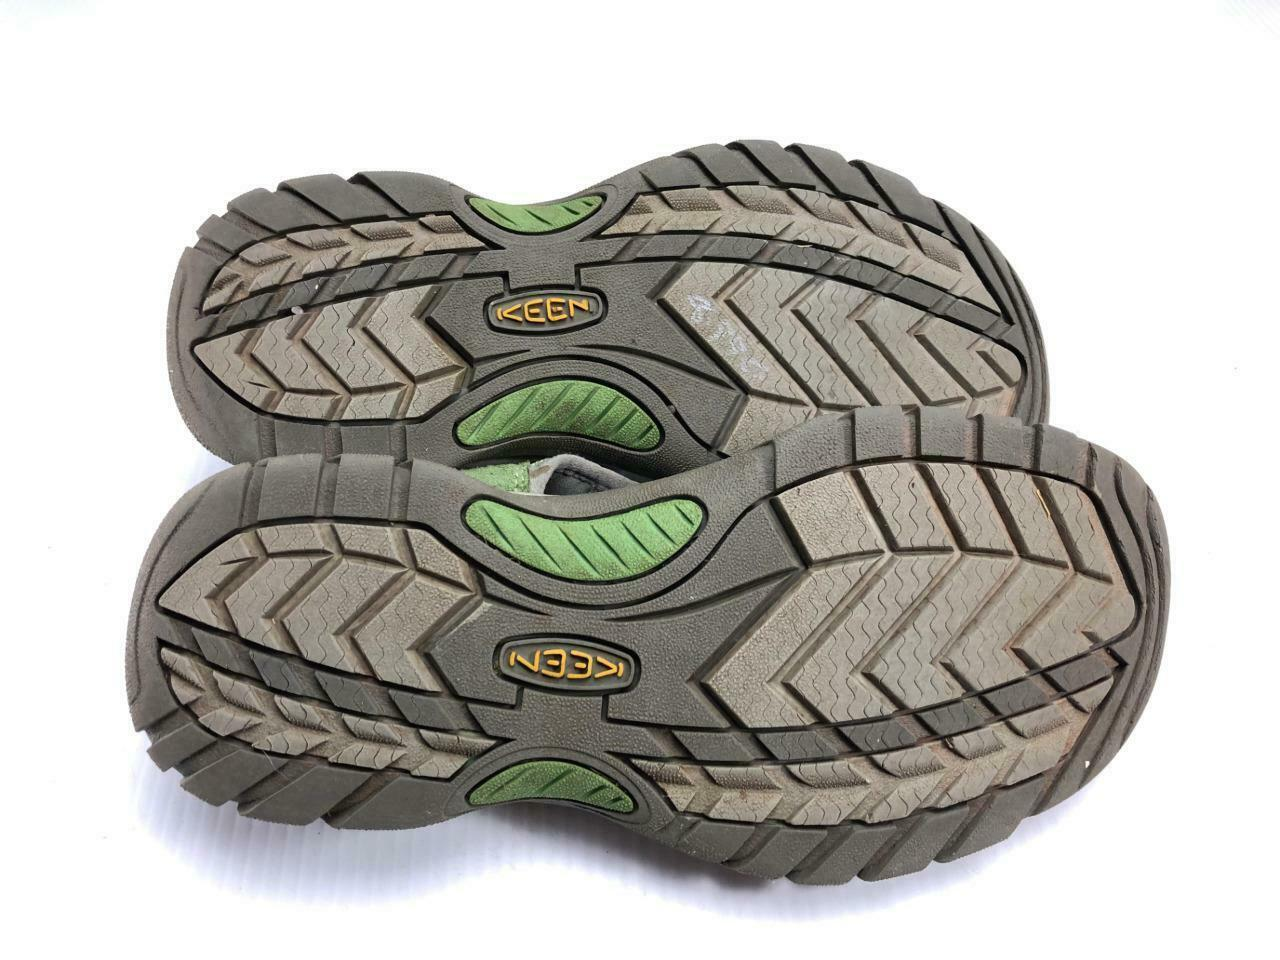 Keen Venice H2 water sandals in green womens 8 image 8